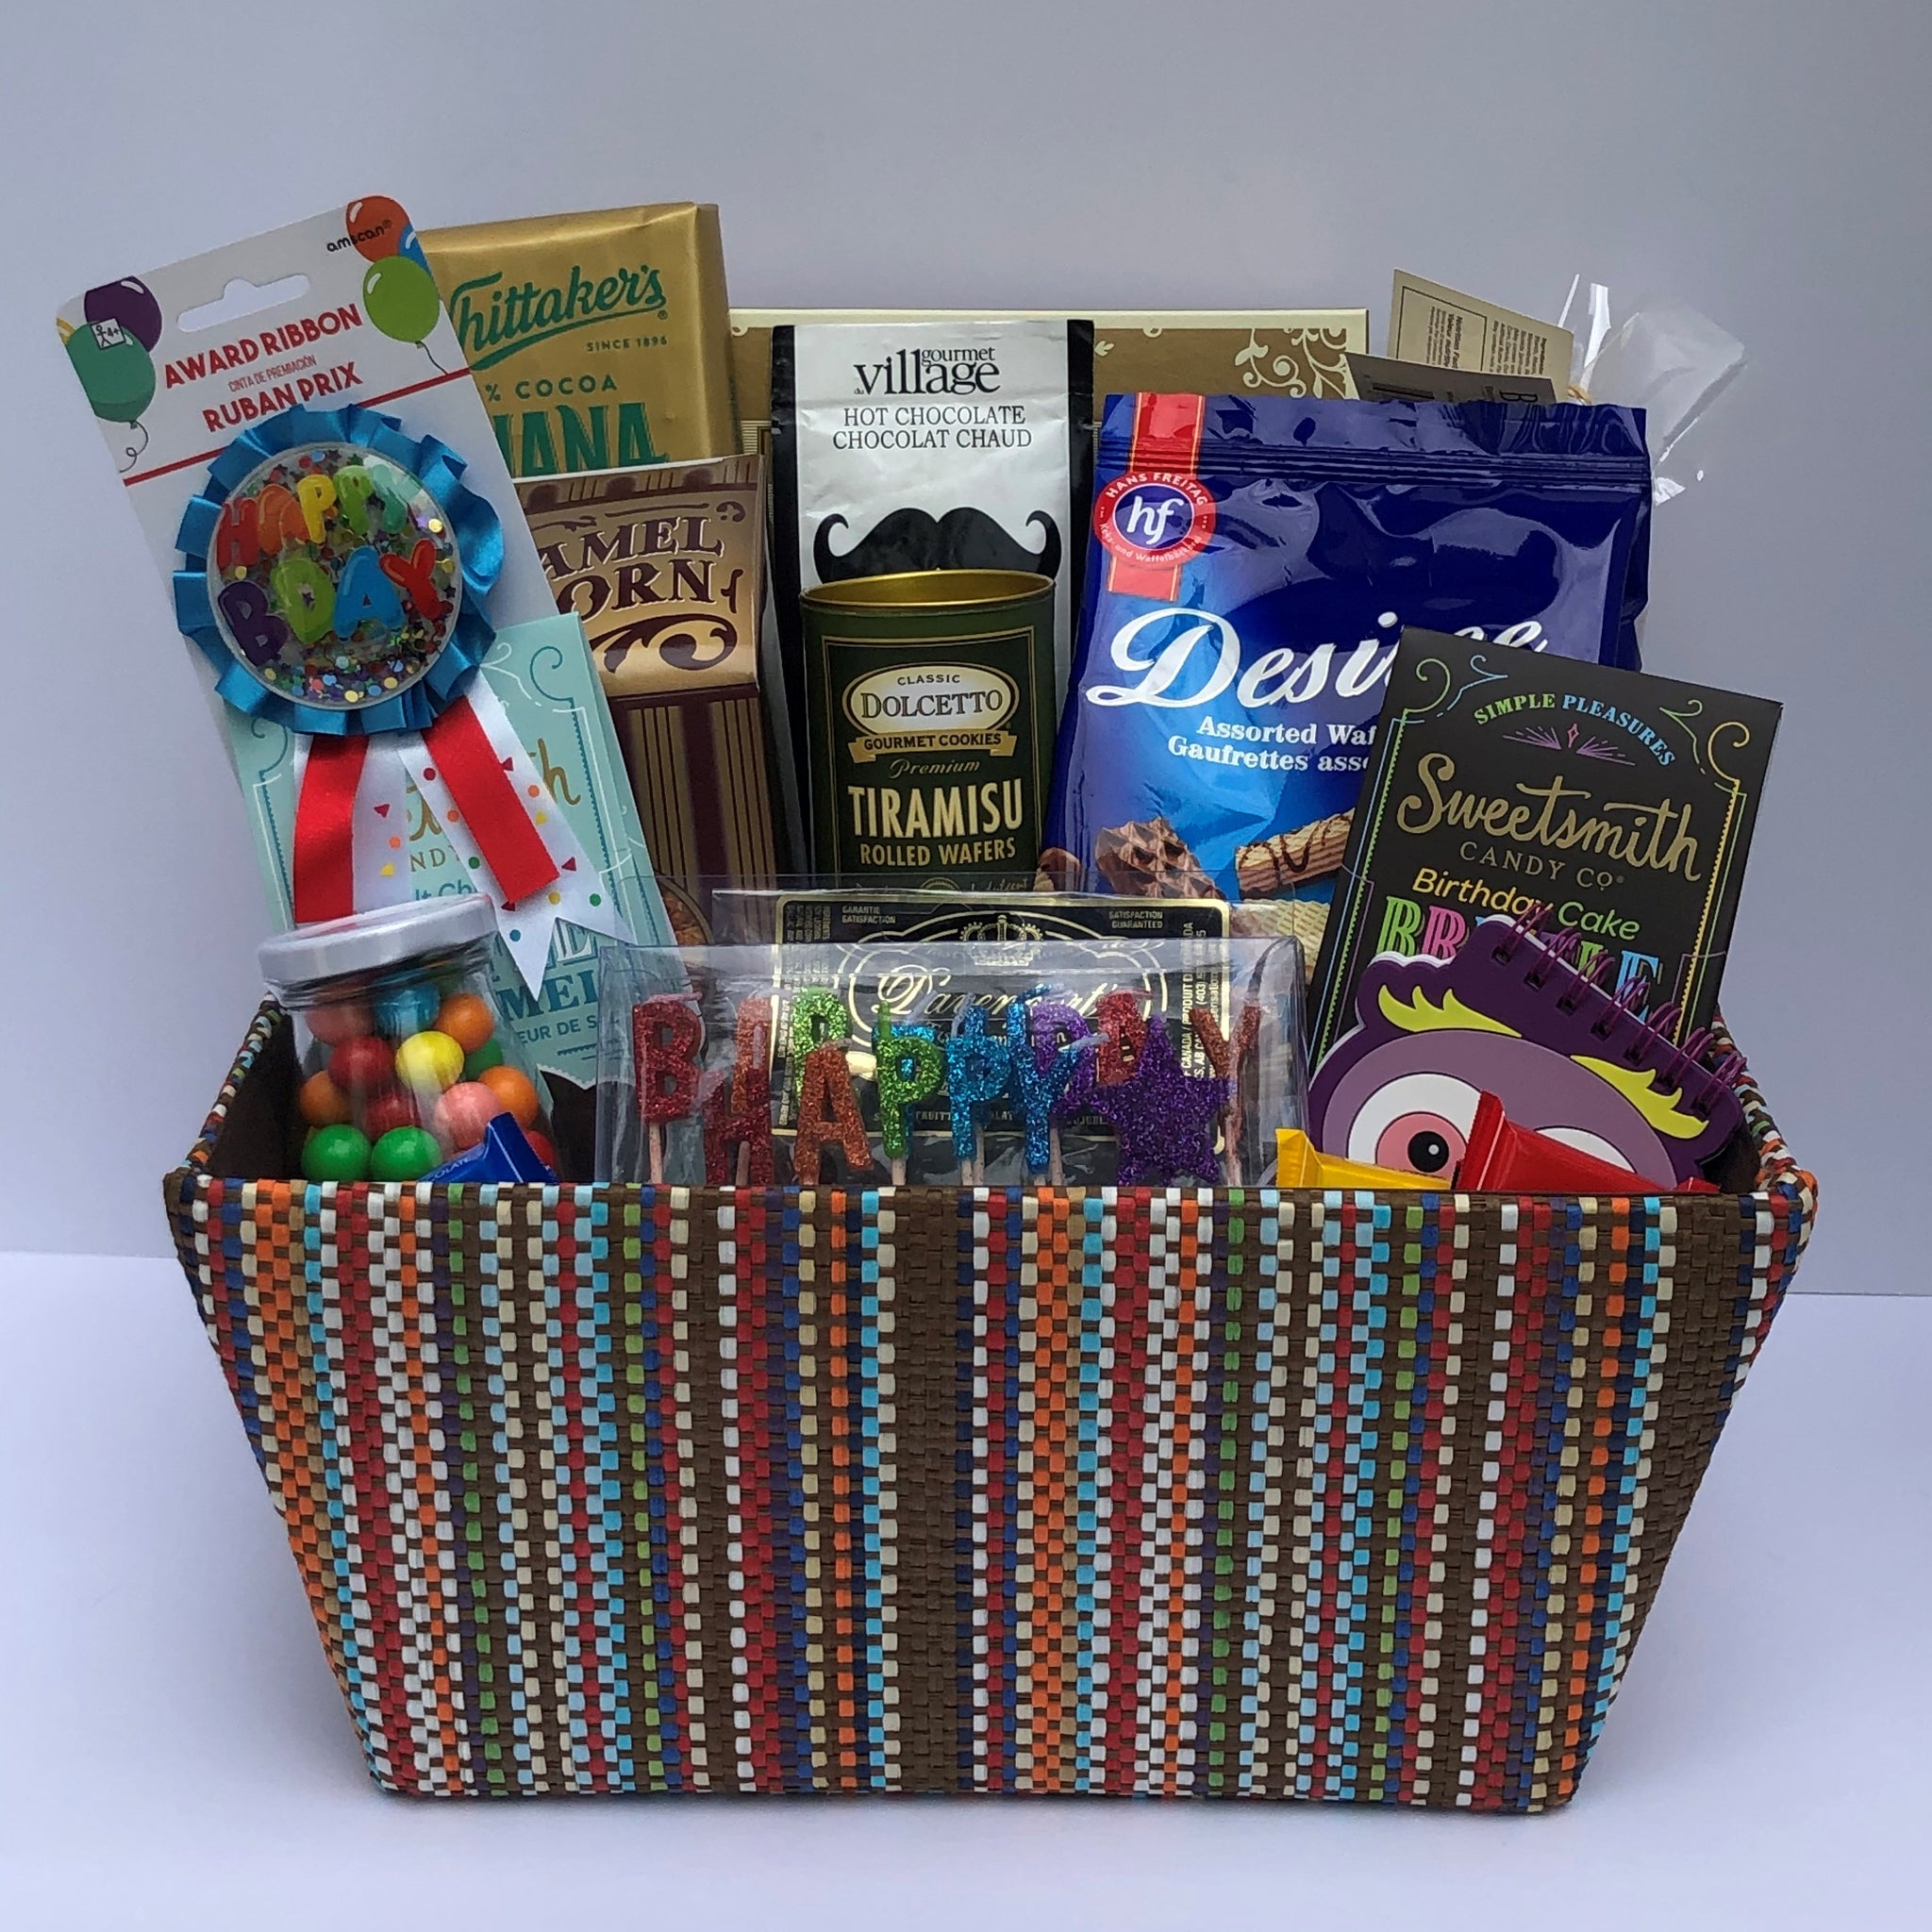 Birthday Gift Basket - Boy: Long life to you!